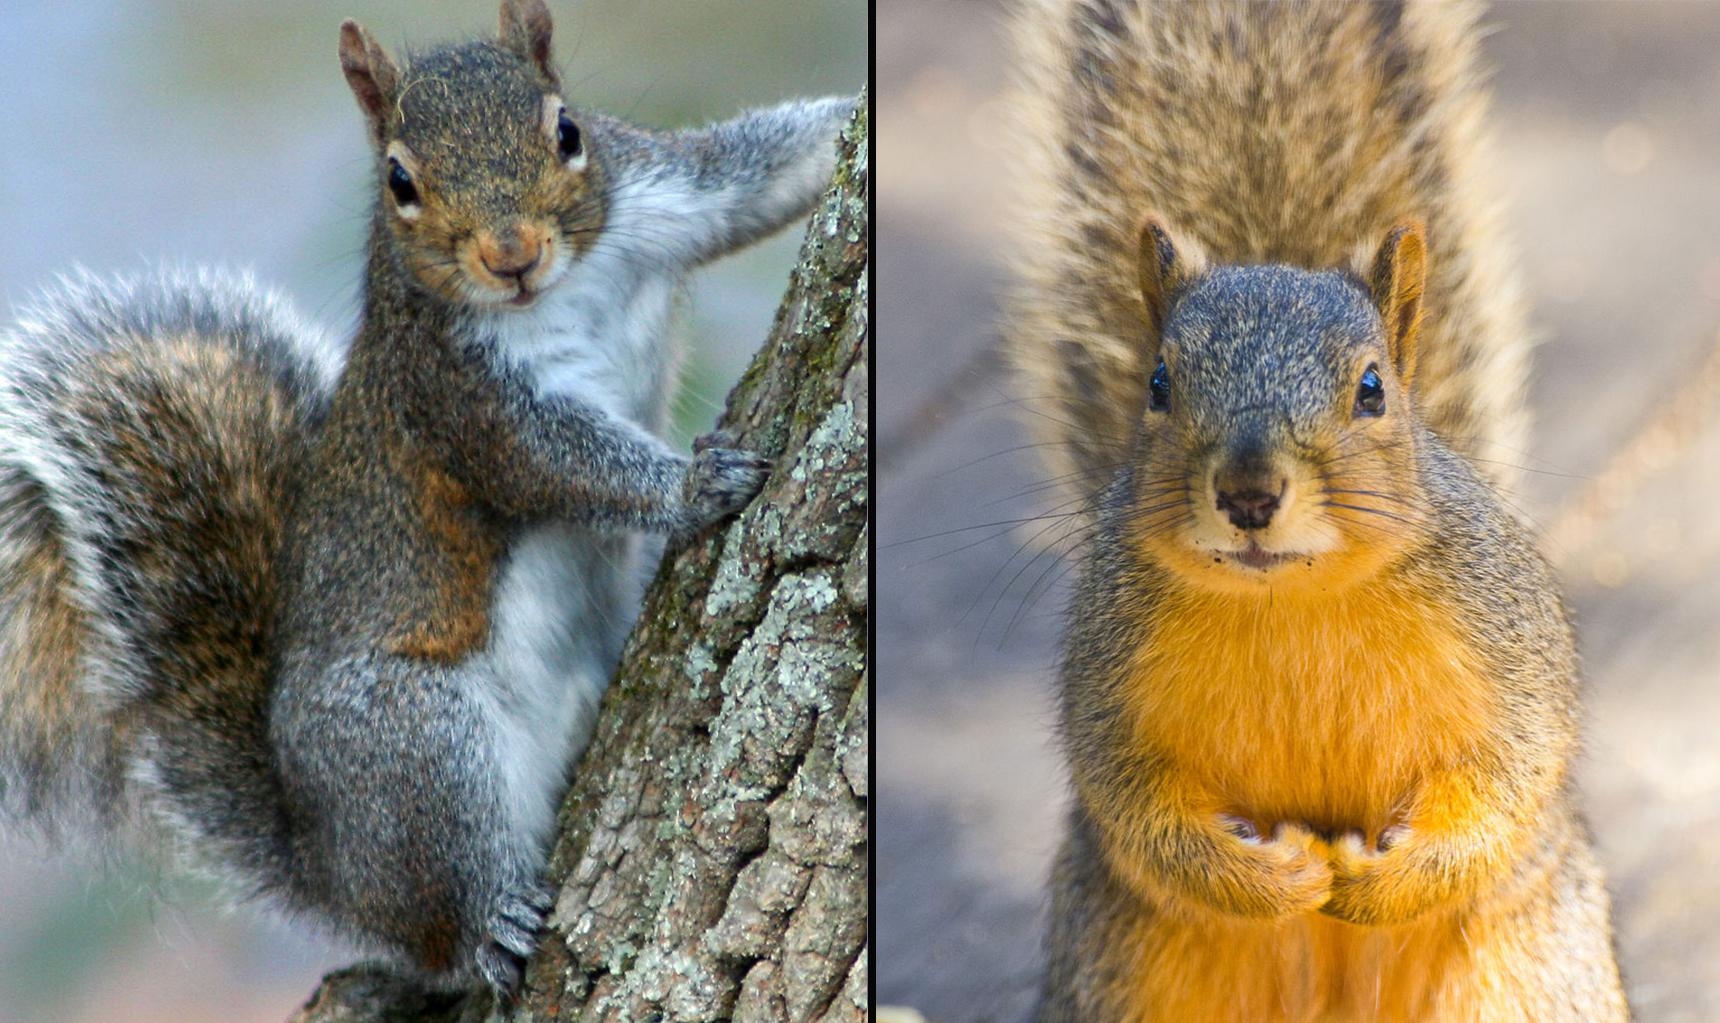 Left: A gray squirrel (Chiswick Chap / Wikimedia Commons) Right: A fox squirrel (Antoine Taveneaux / Wikimedia Commons)